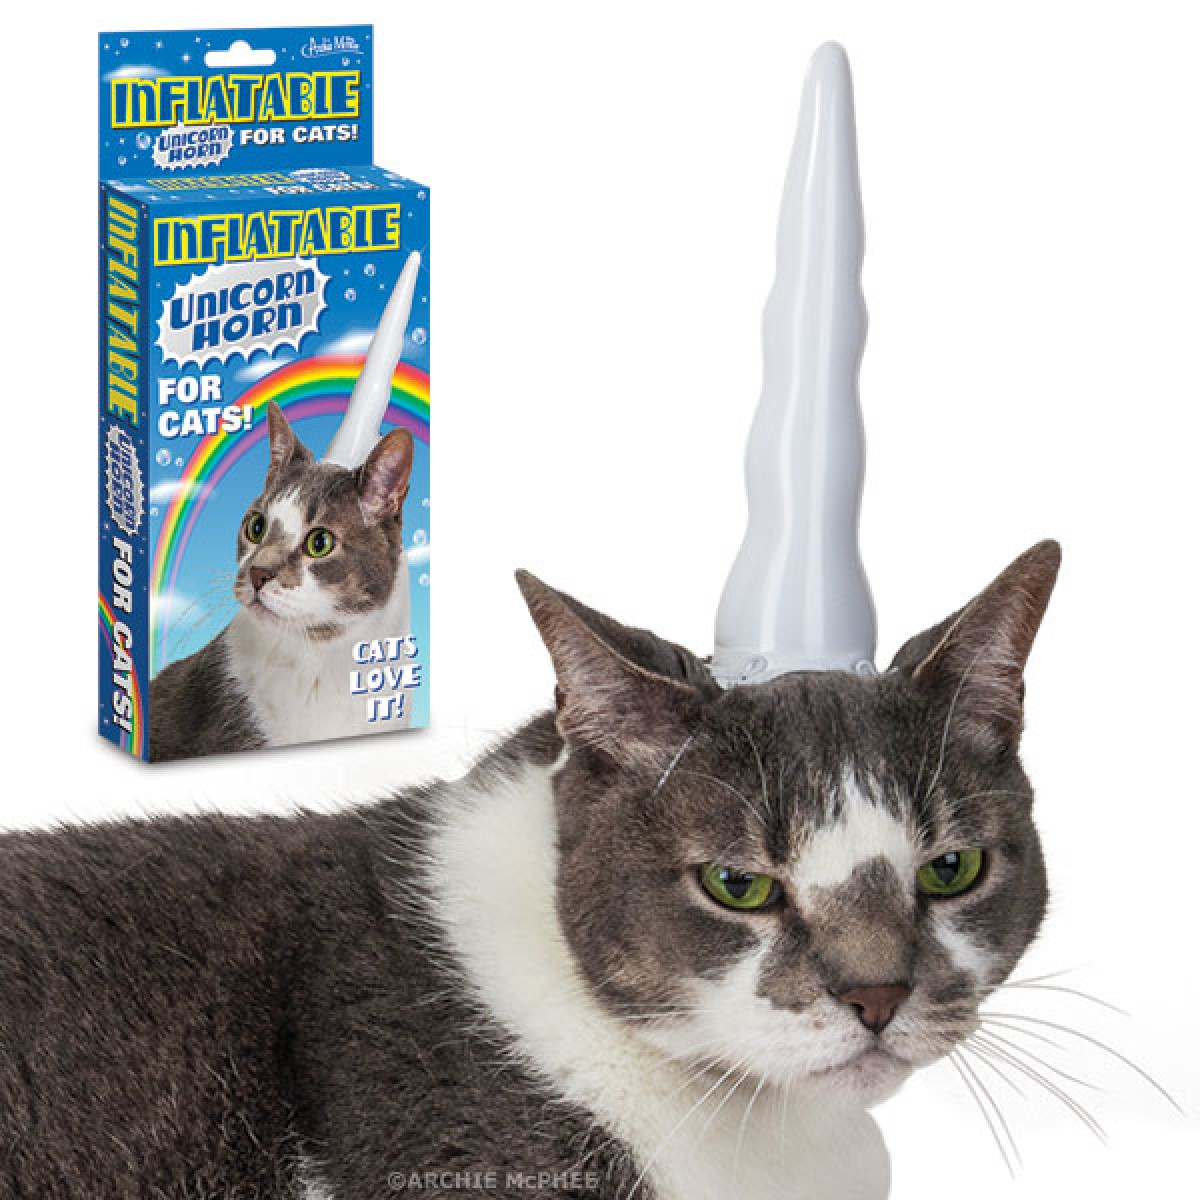 Inflatable Unicorn Horn for Cats   Archie McPhee Co 1200x1200